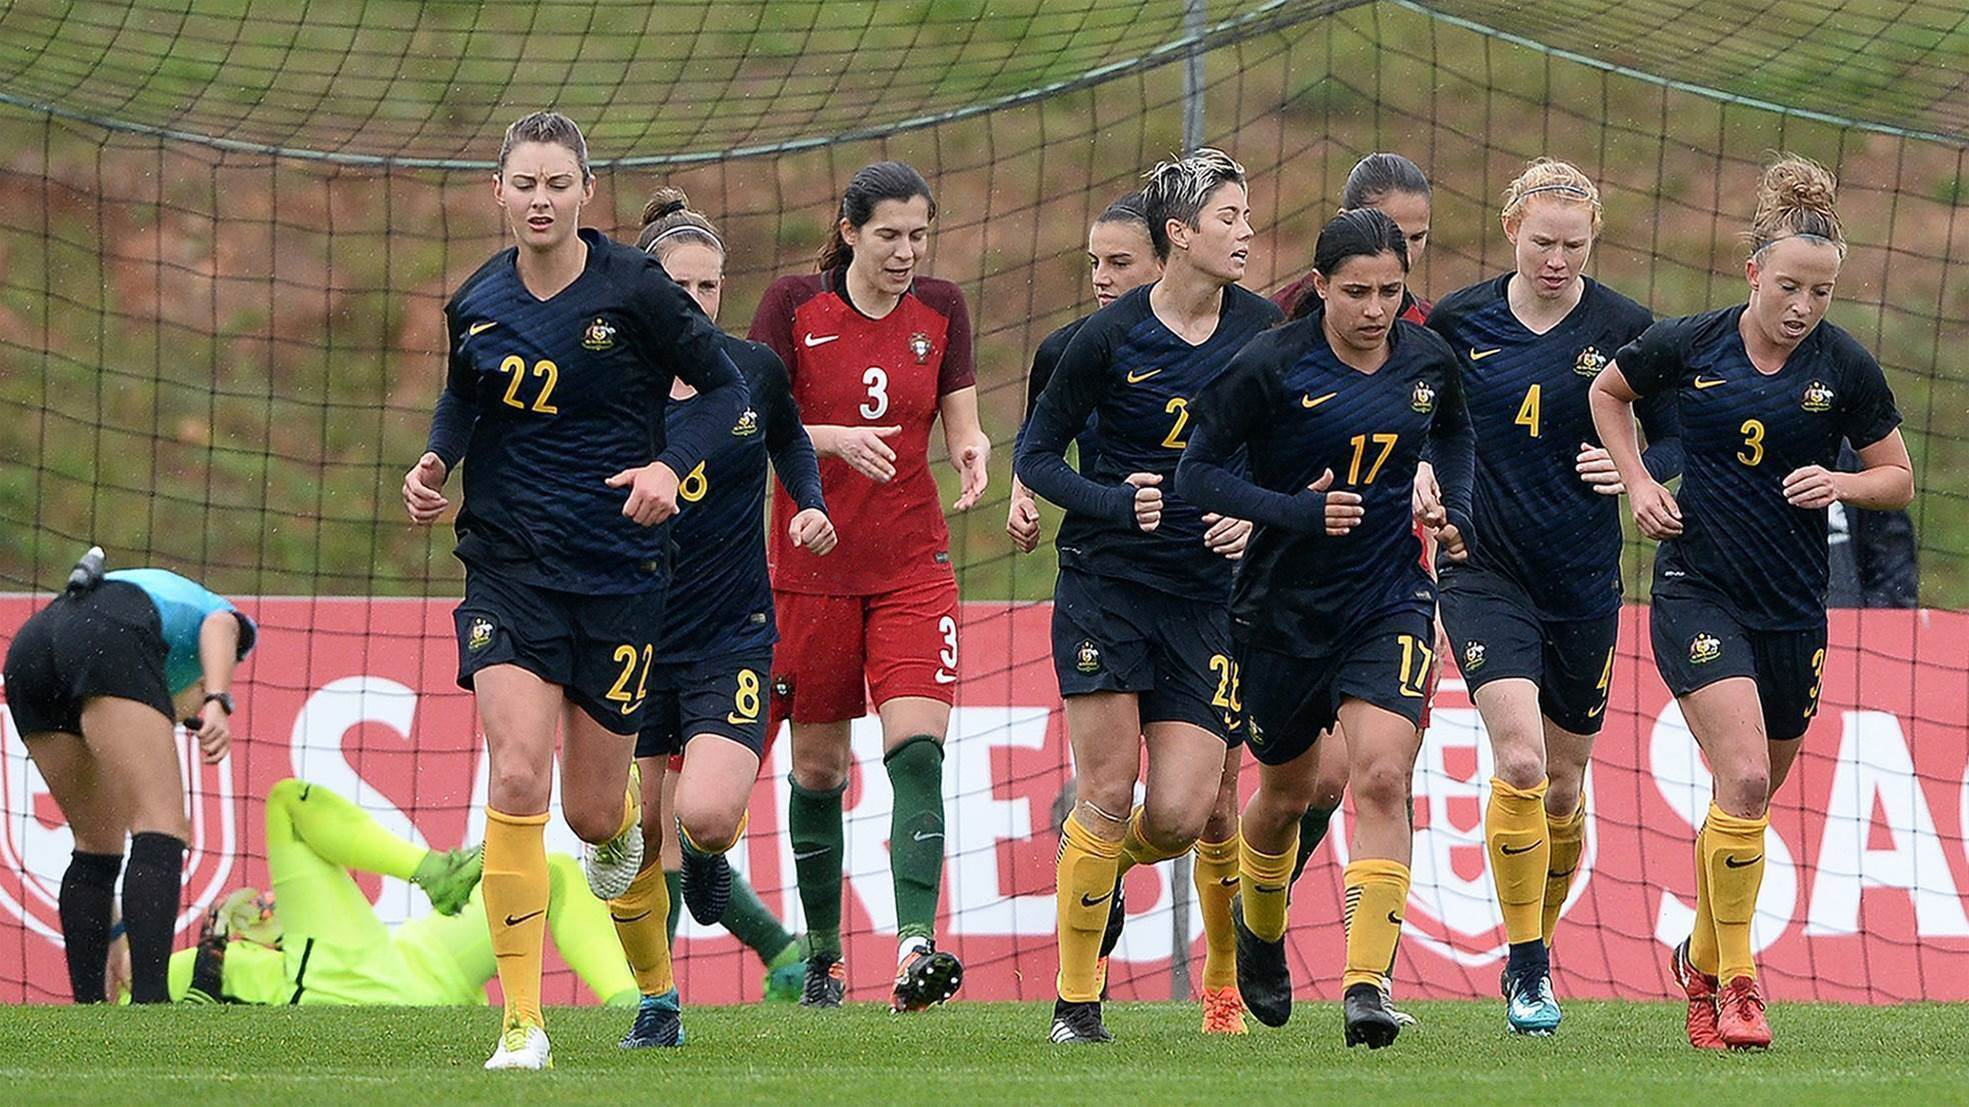 Matildas finish fourth at the Algarve Cup